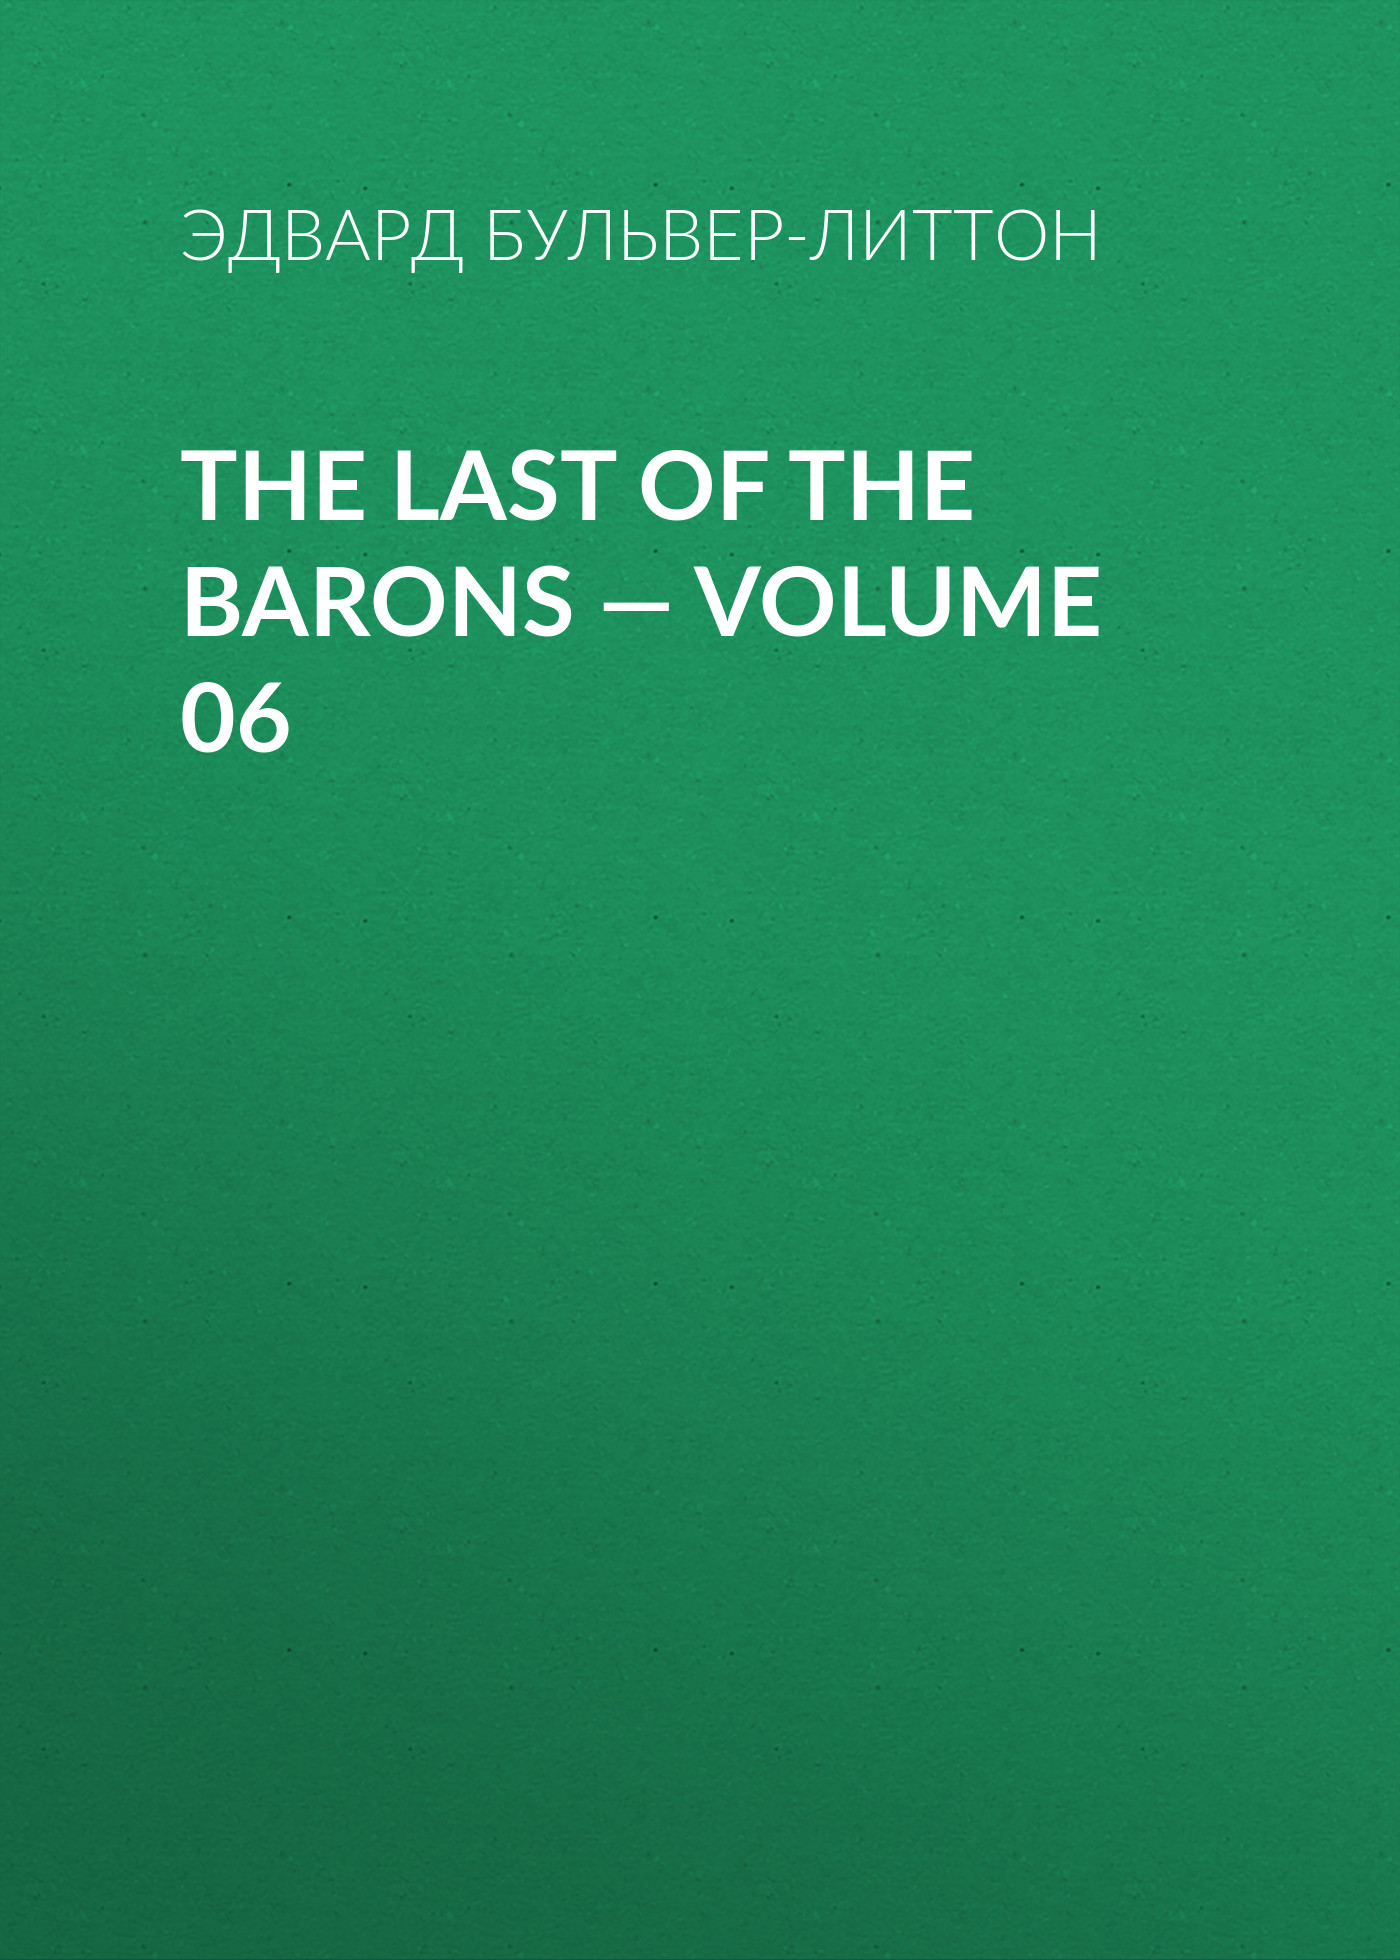 Эдвард Бульвер-Литтон The Last of the Barons — Volume 06 эдвард бульвер литтон harold the last of the saxon kings volume 06